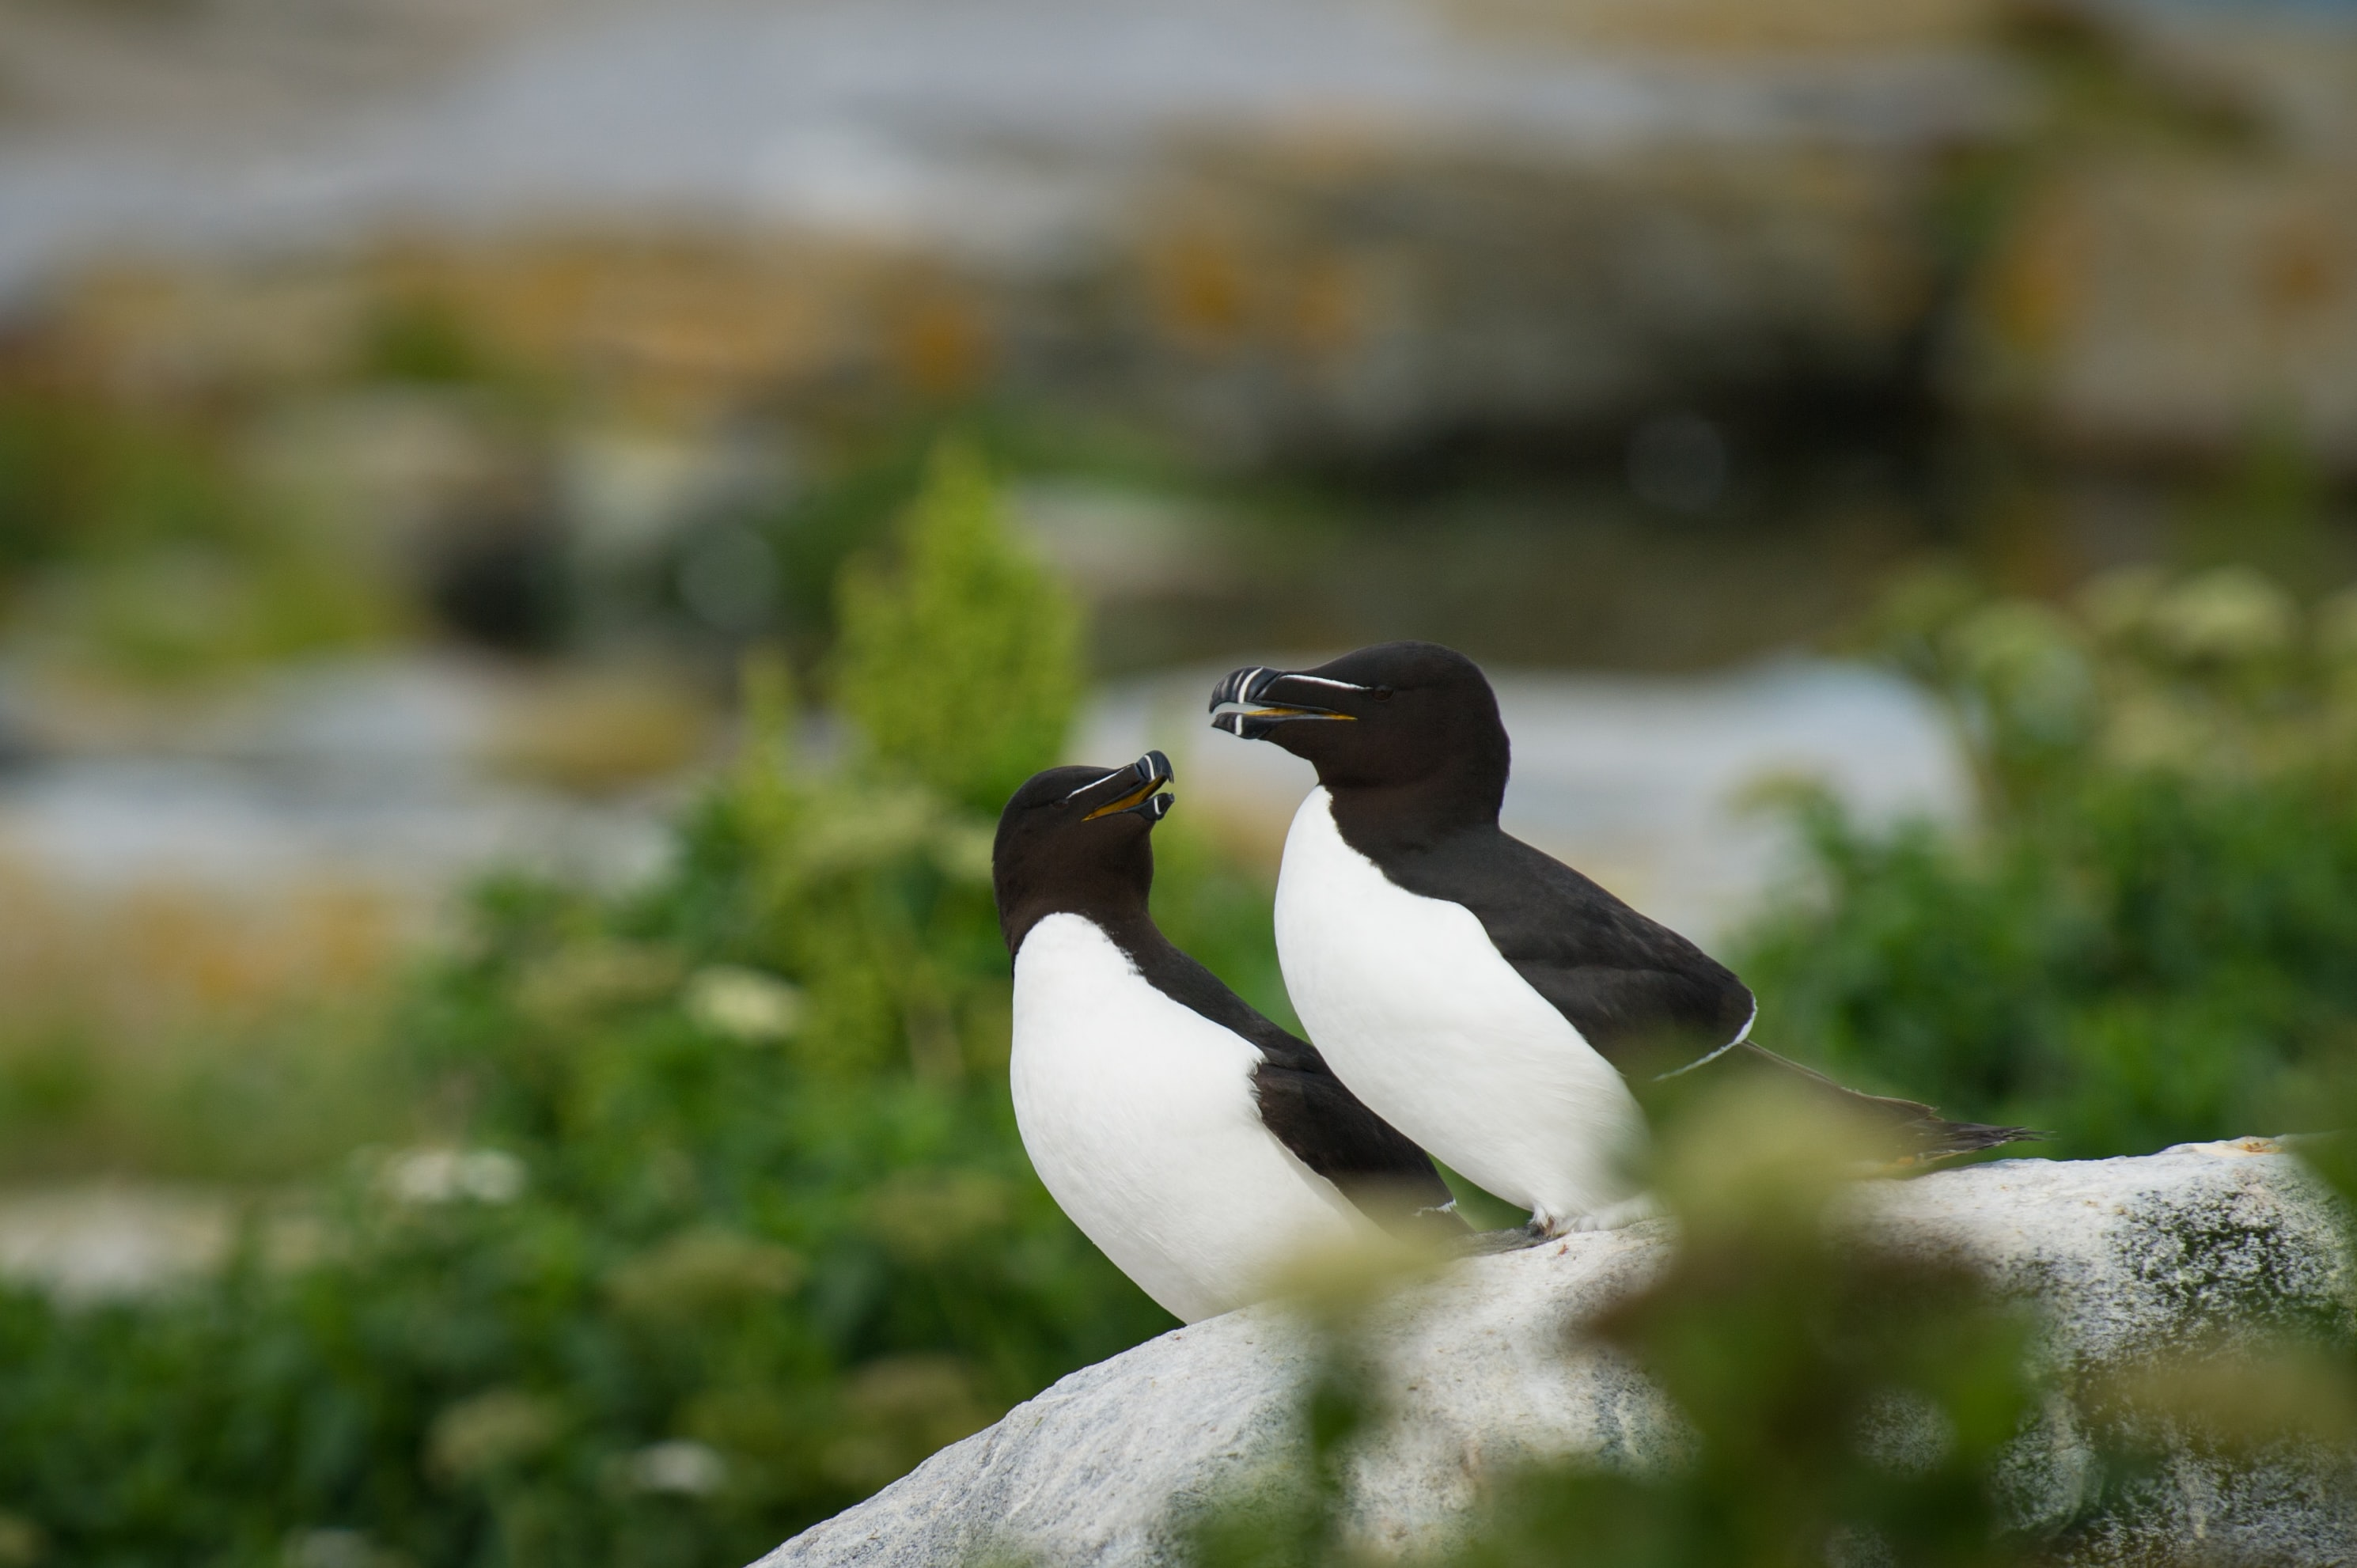 Two black and white birds huddled closely on a white rock